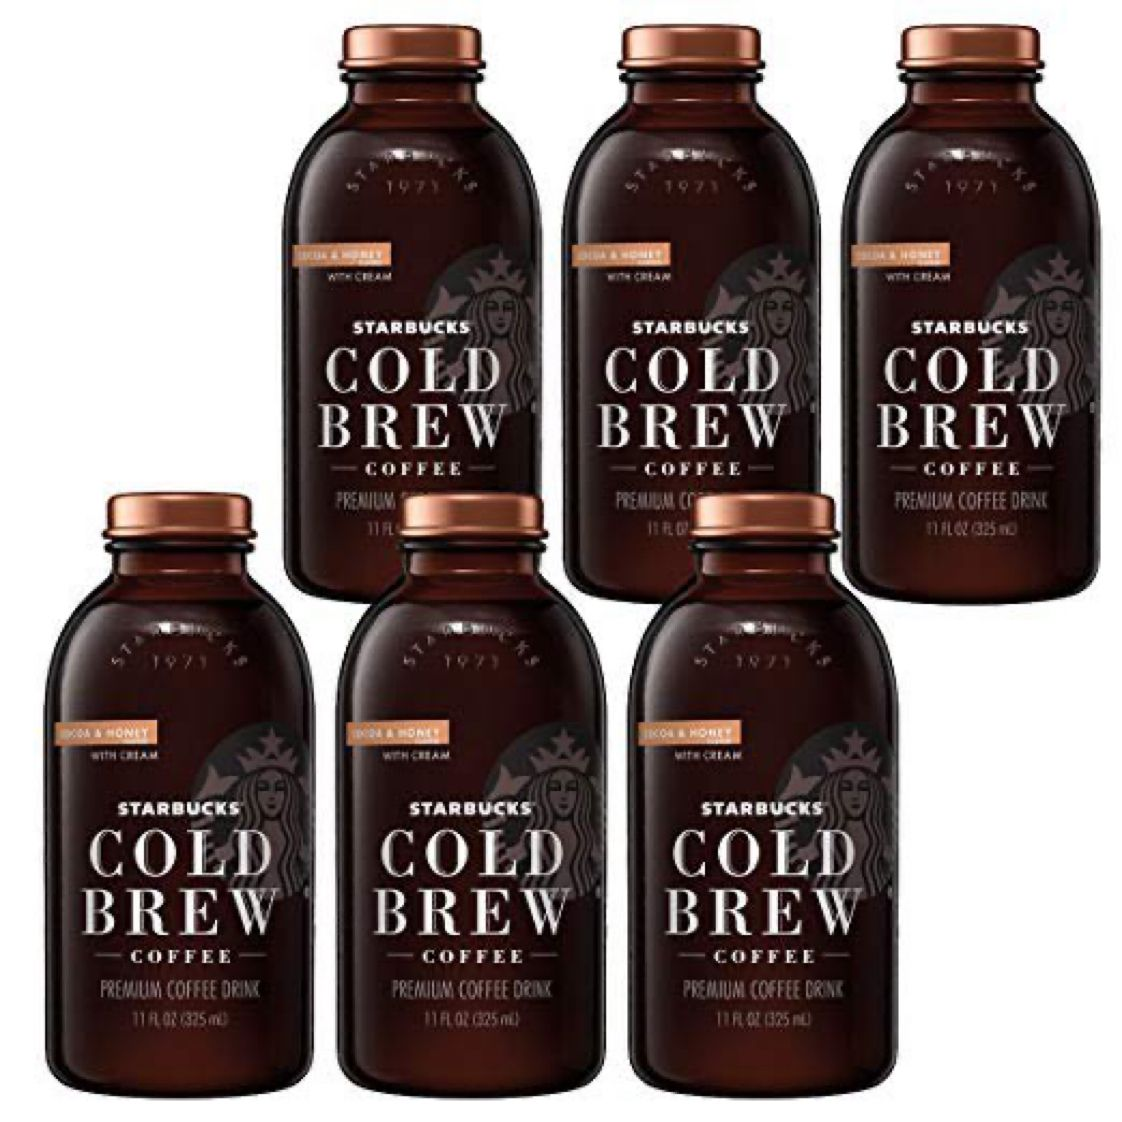 6 Pack - Starbucks Cold Brew Coffee, Cocoa & Honey with Cream, 11 Fl oz Glass Bottles  $12.21 with Free Prime Shipping   #steals #deals #stealsanddeals